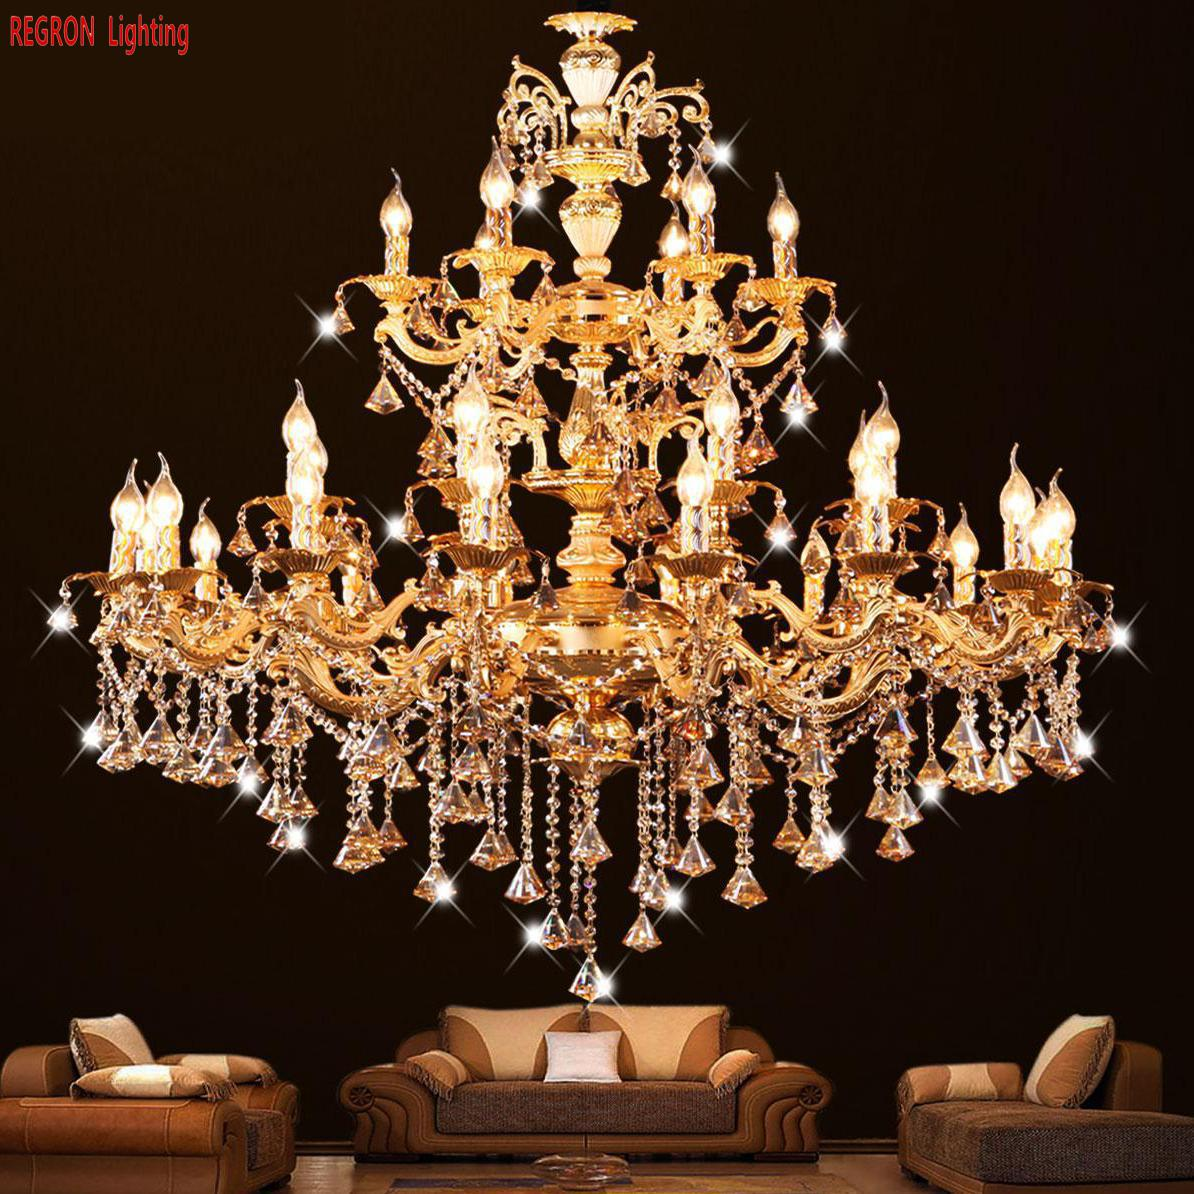 Regron Royal Gold Chandelier Large K9 Diamond Crystal Led Chandelier Luxury Hanging Lights For Foyer Church Villa Banquet Lounge